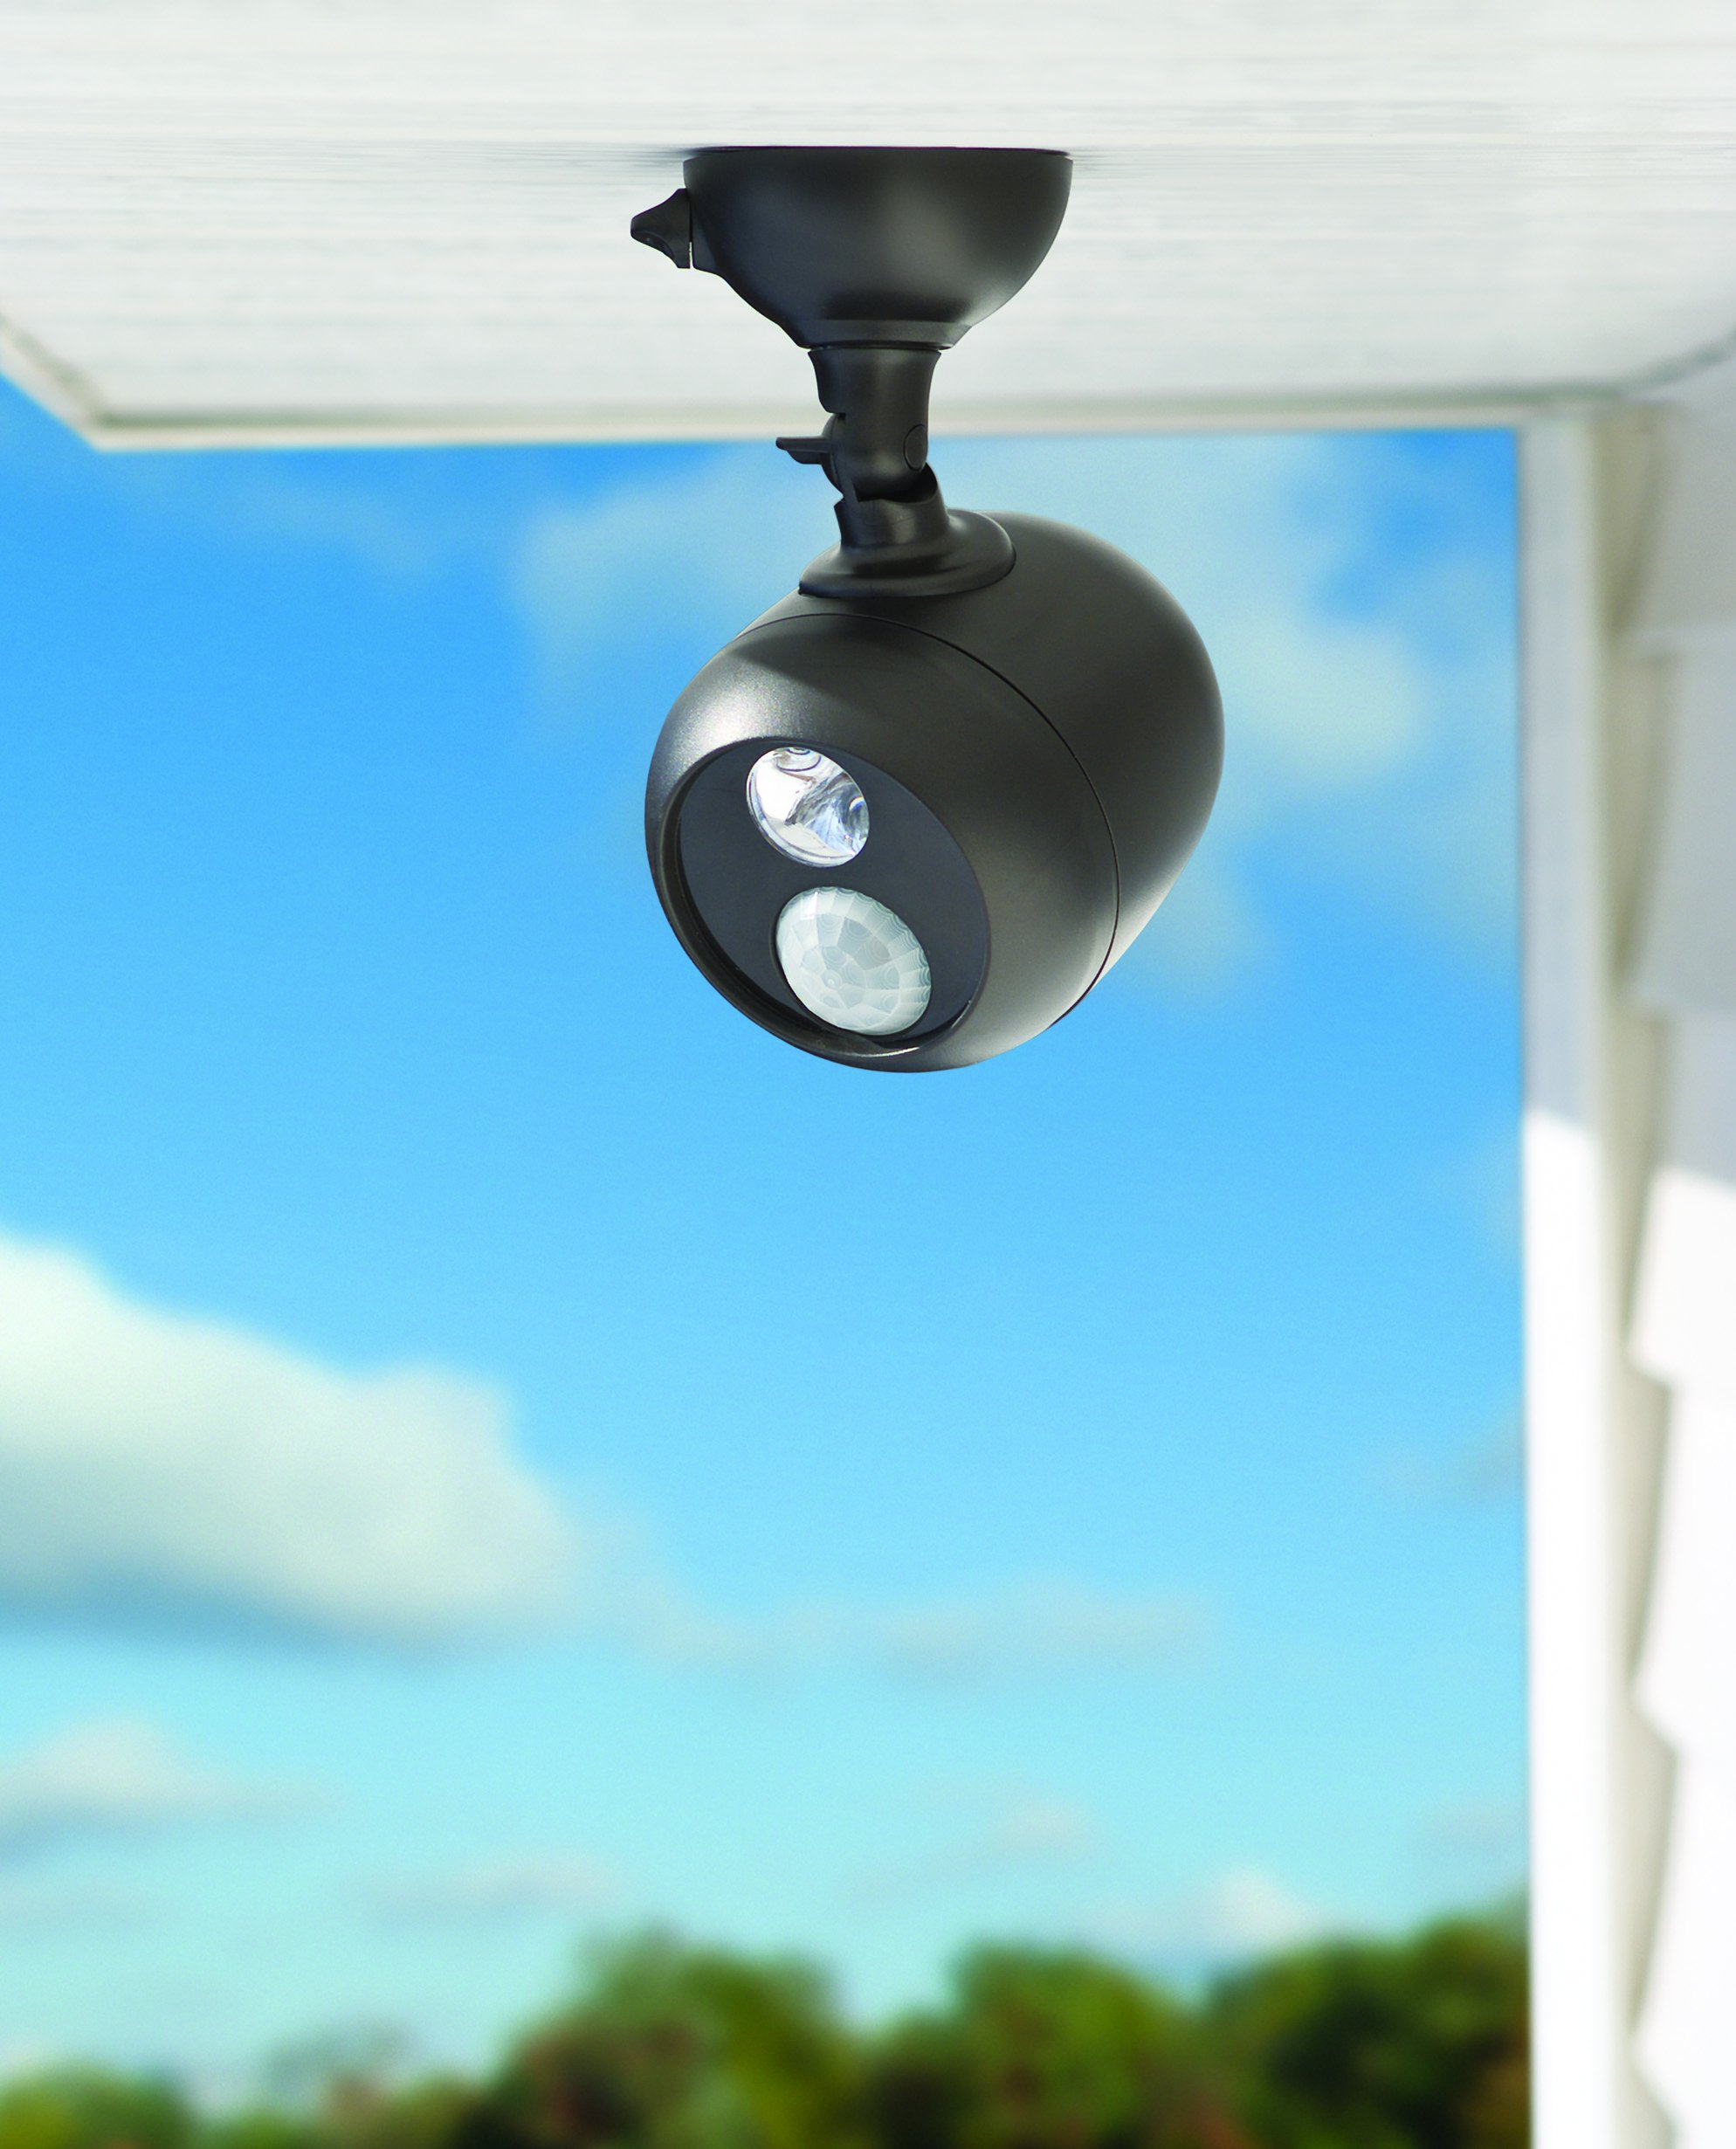 Mr Beams MB360 Wireless LED Spotlight with Motion Sensor and Photocell, Dark Brown by Mr Beams (Image #8)